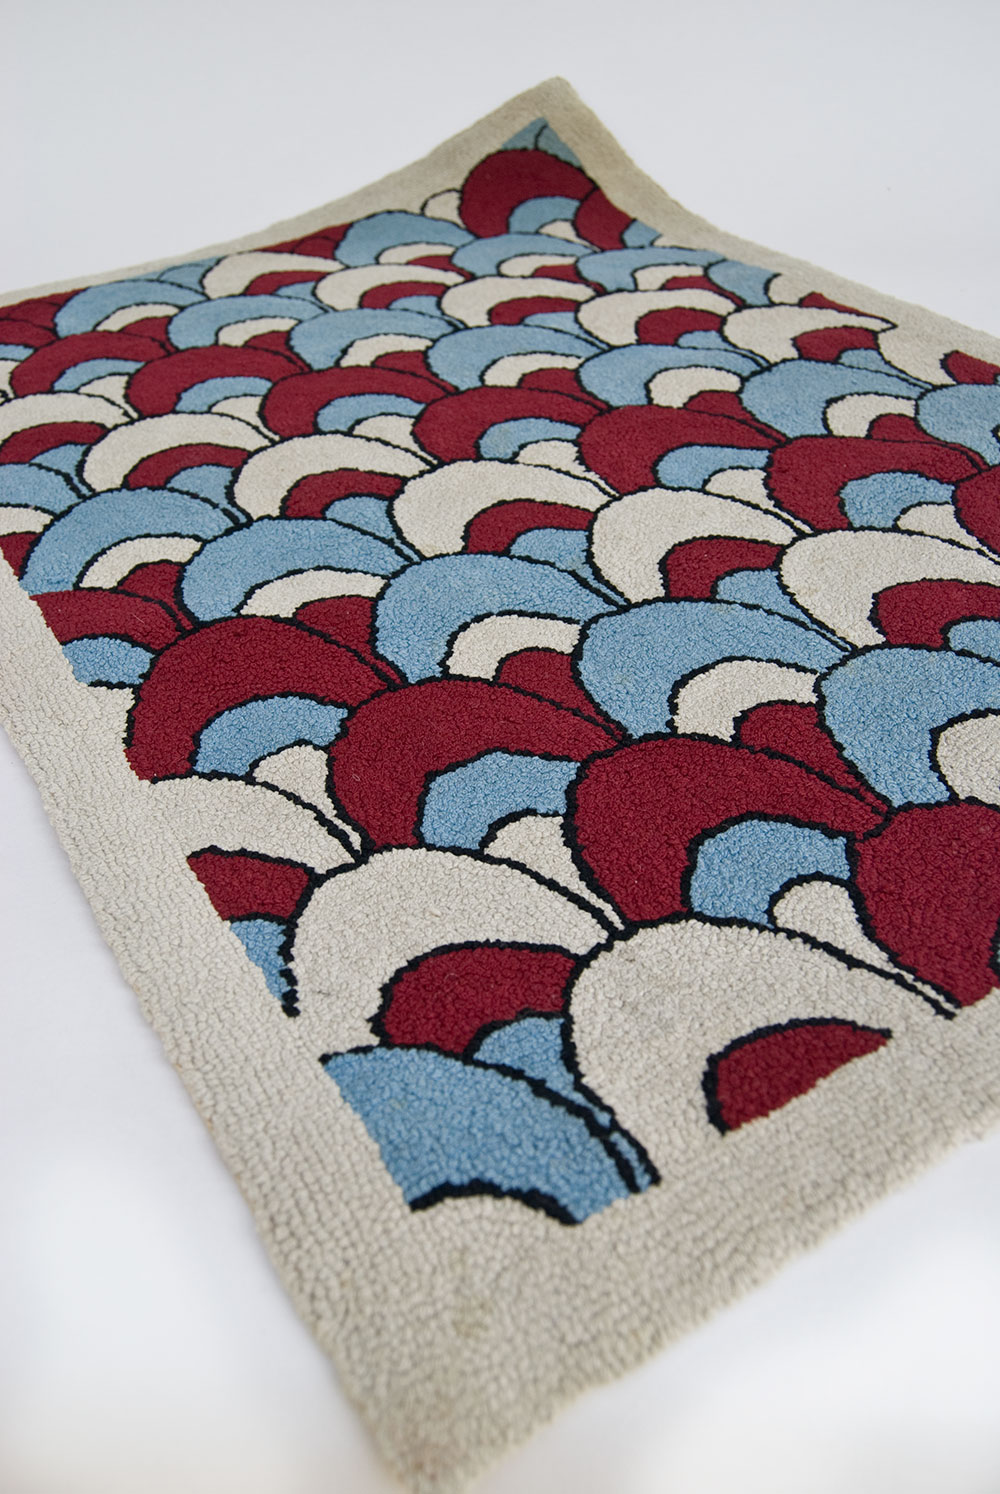 patriotic americana red white and blue antique american hooked rug. Black Bedroom Furniture Sets. Home Design Ideas